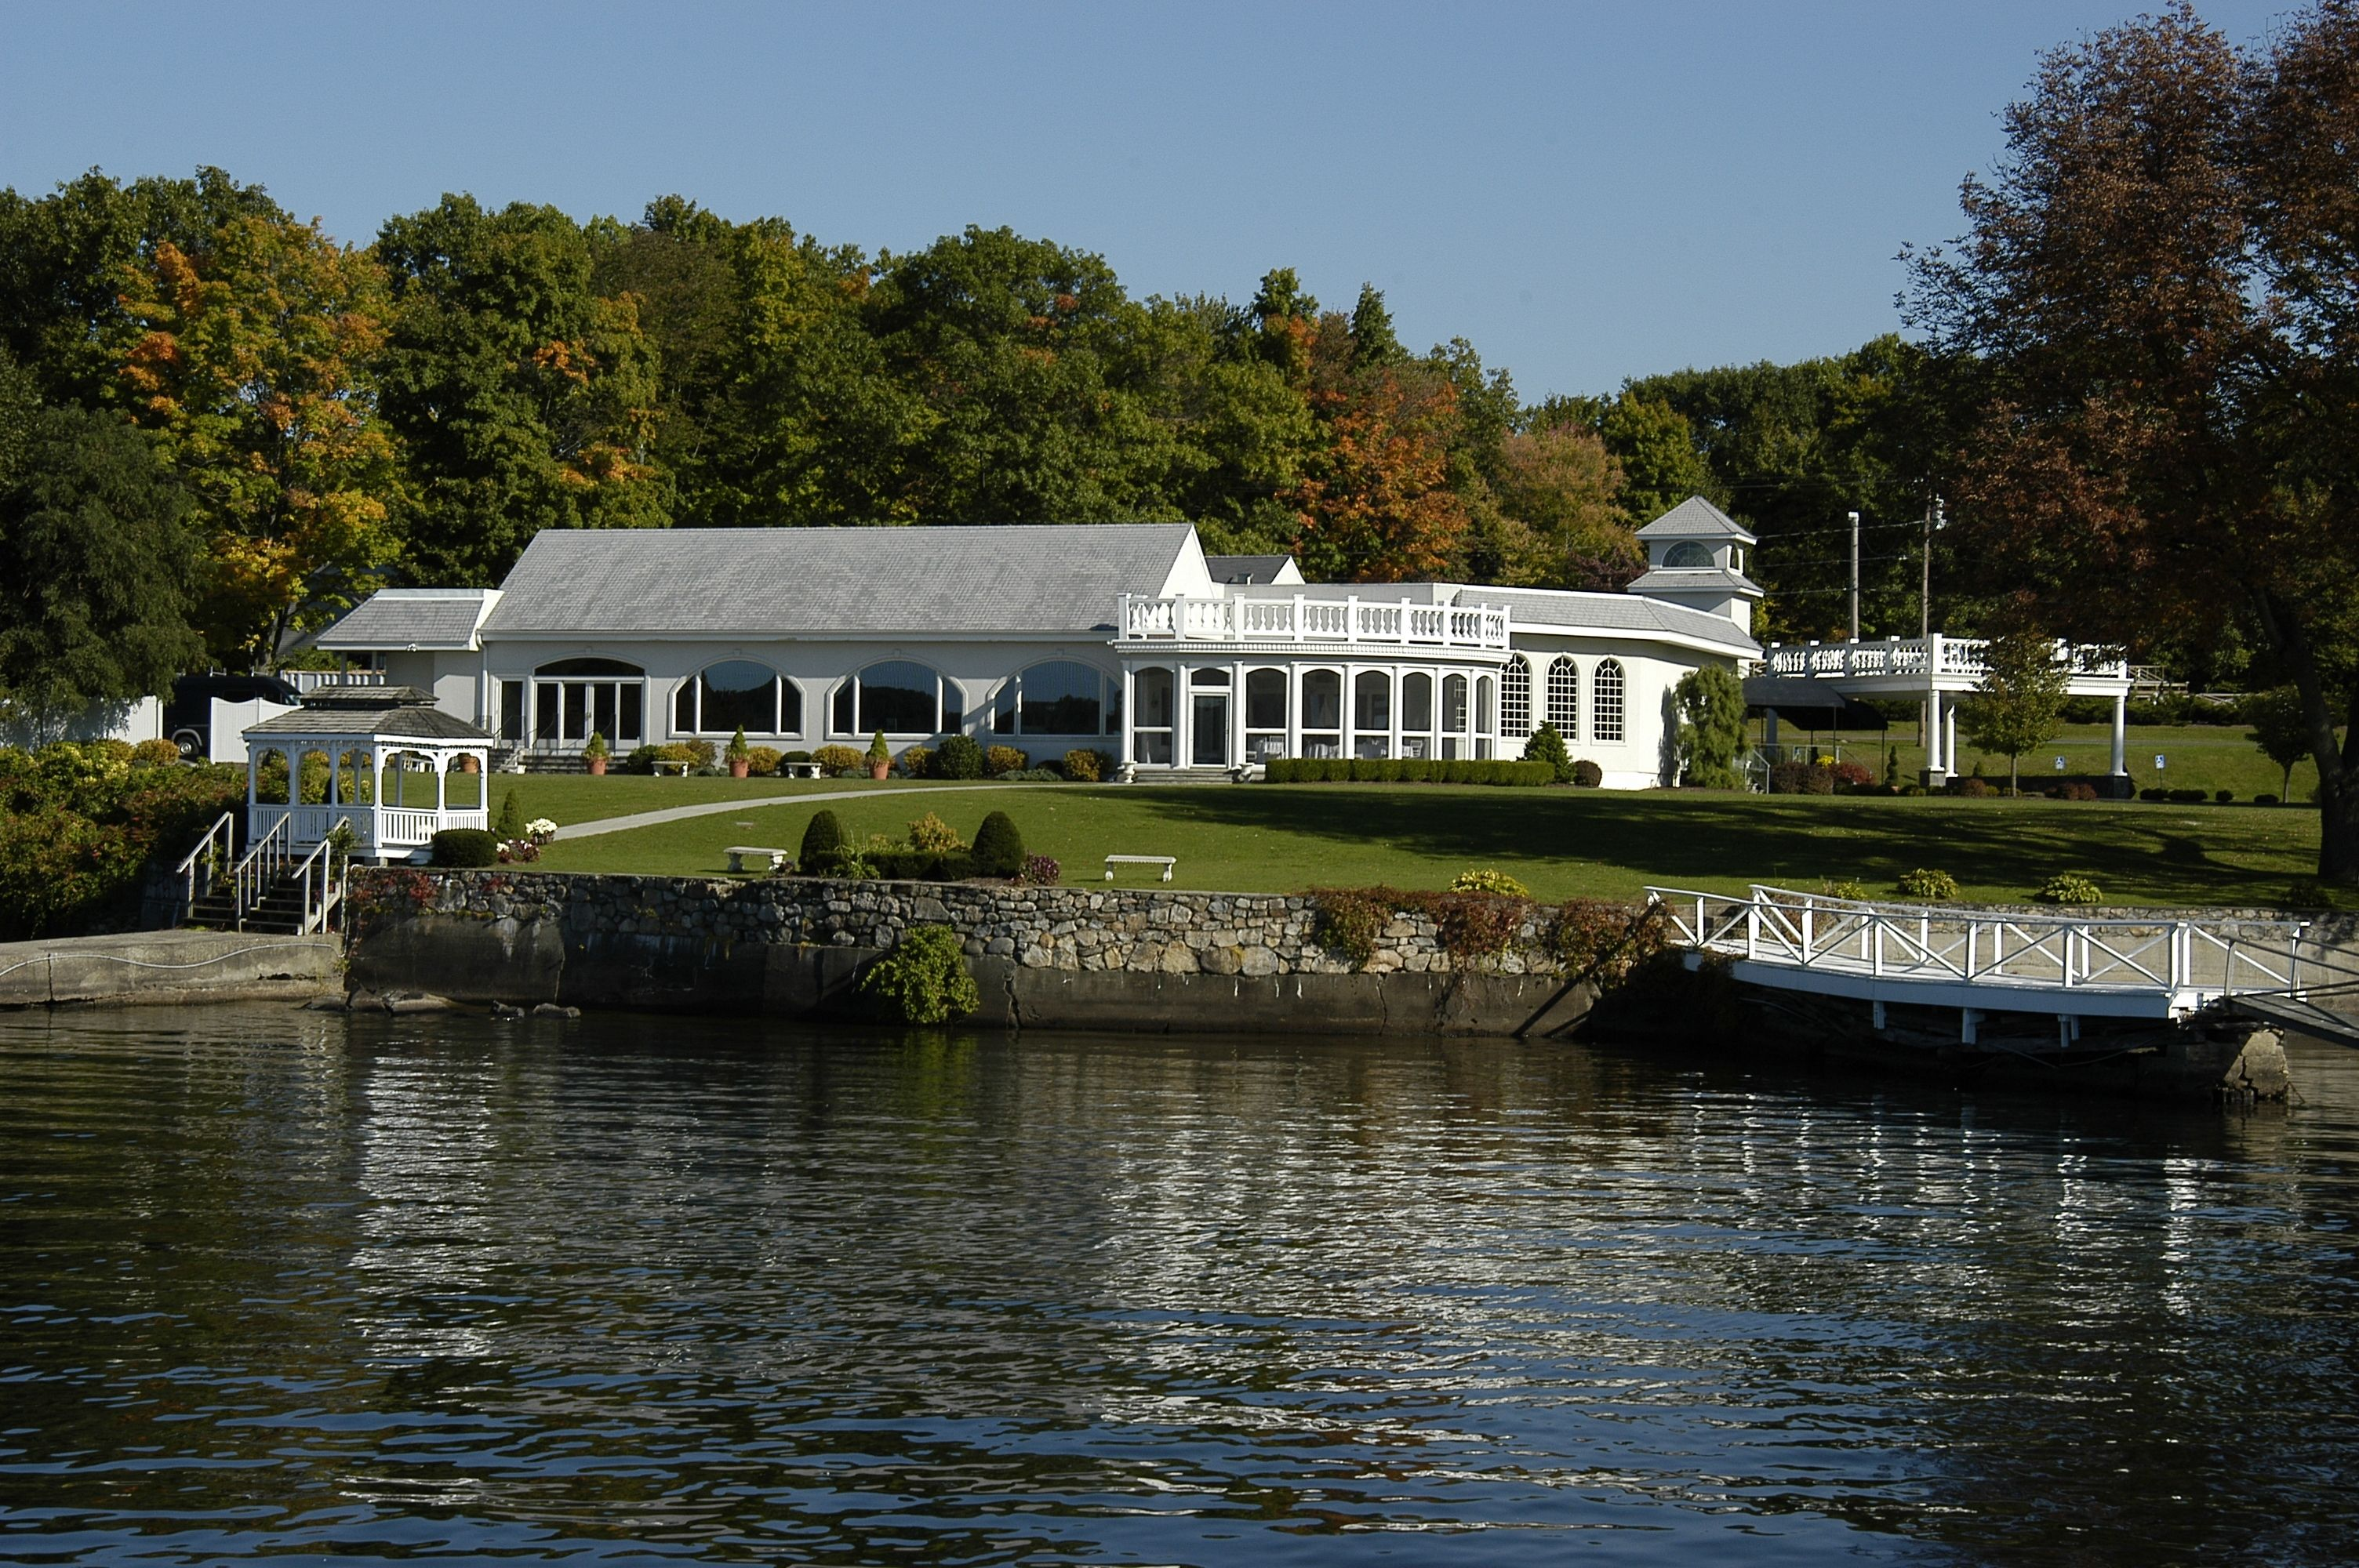 Beautiful view of the candlewood inn designed by leigh overland beautiful view of the candlewood inn designed by leigh overland architect ldoverland junglespirit Image collections